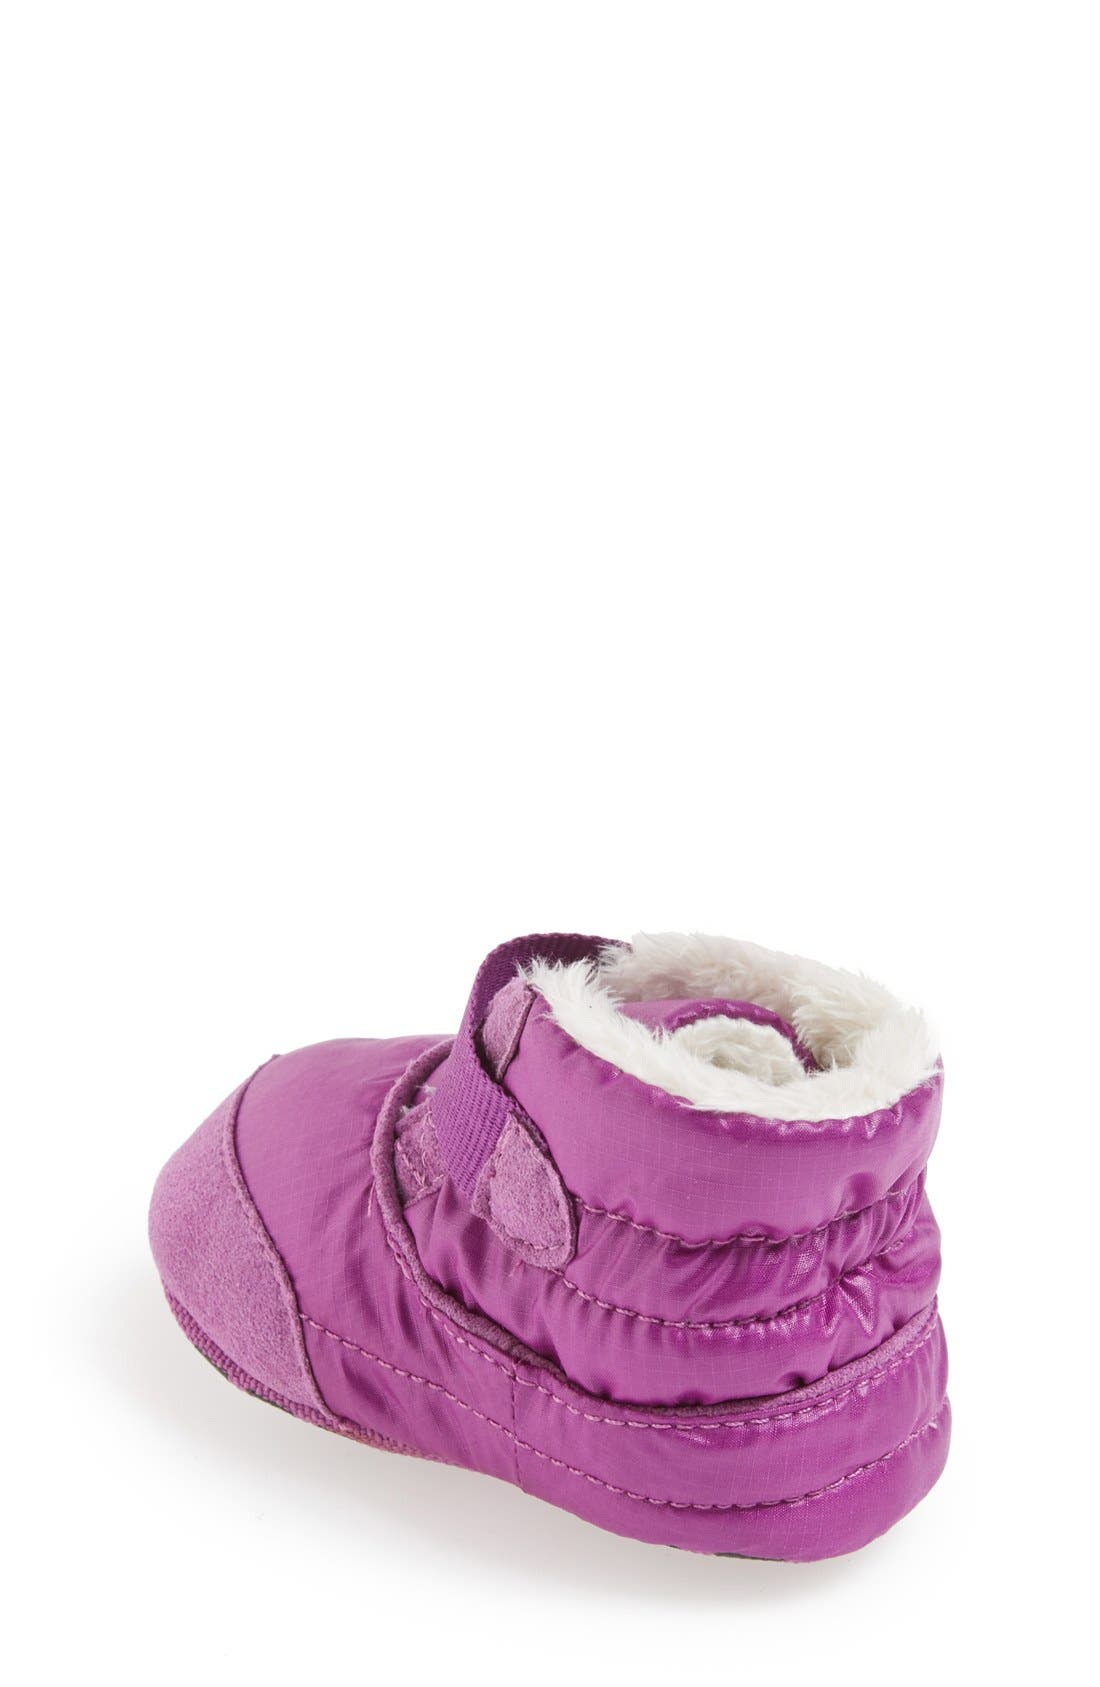 'Asher' Bootie,                             Alternate thumbnail 4, color,                             500